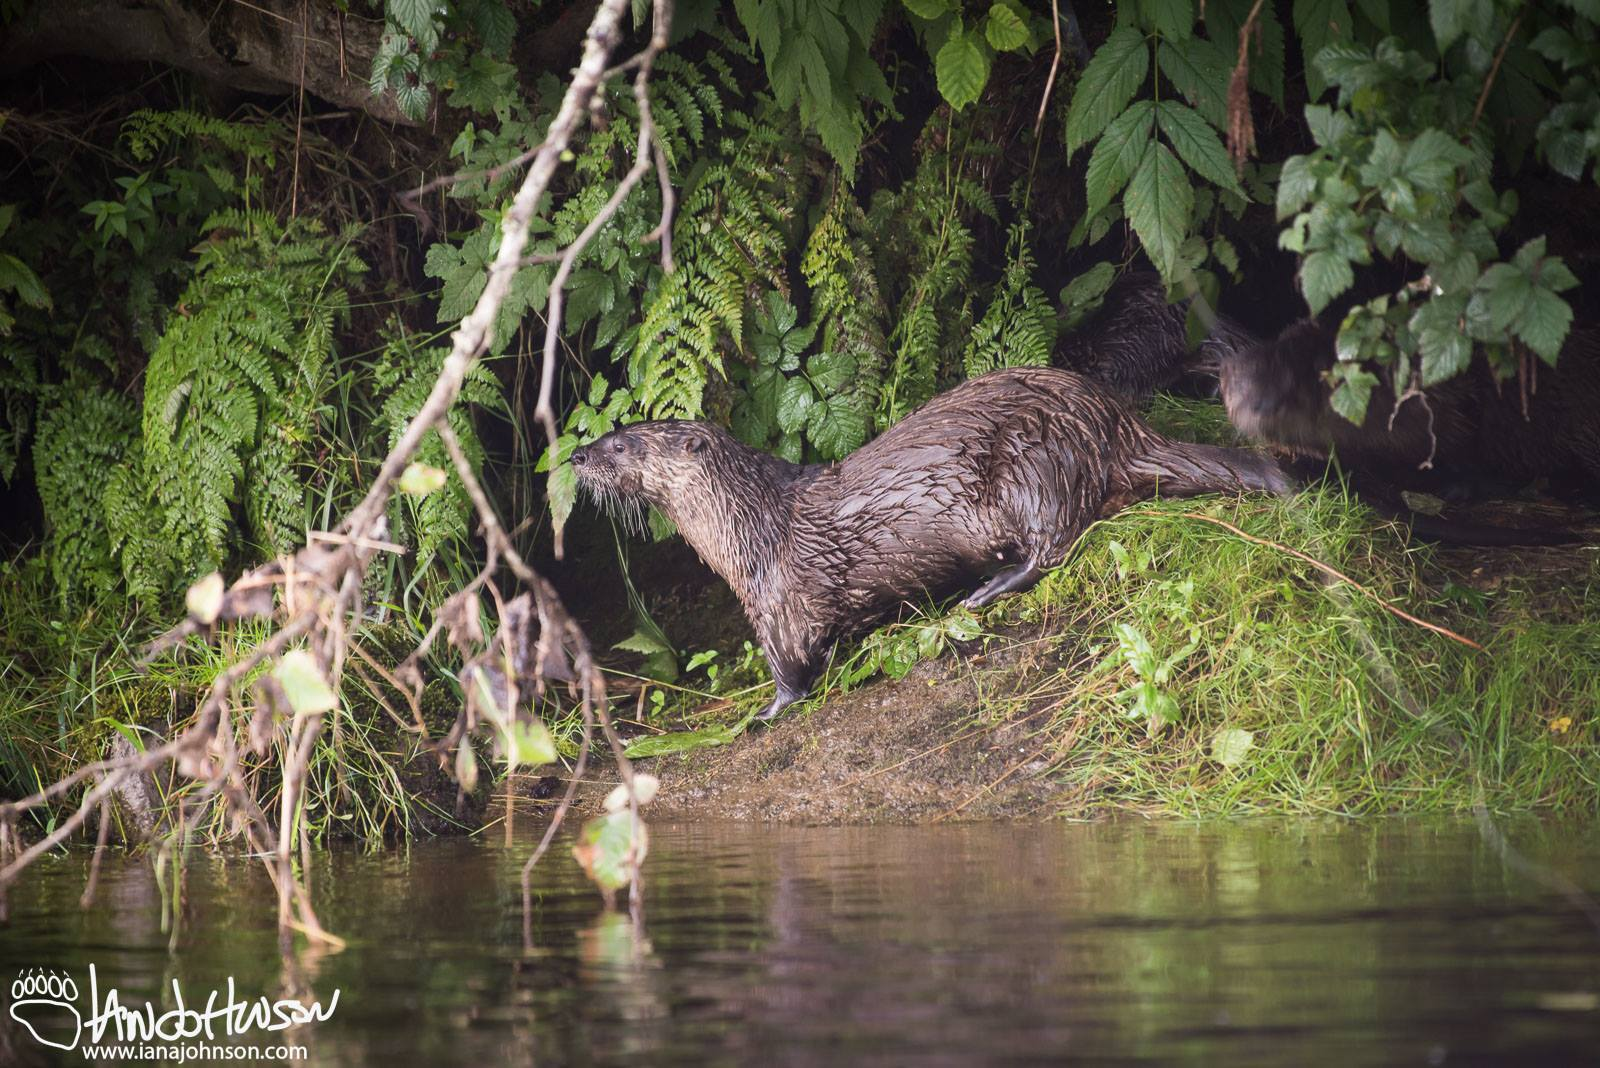 """RIVER OTTERS LIVE IN FAMILY UNITS WITH A SET OF PARENTS, YOUNG AND SOMETIMES """"HELPERS"""". WATCH THEIR ANTICS ALONG THE FRINGES OF THE FRESHWATER STREAMS, LAKES AND BEACH EDGES. THEIR ACTUAL DEN MIGHT BE UP TO A HALF MILE FROM THE WATER IN """"BORROWED"""" BURROWS OR NATURAL CAVITIES AND SNAGS. IMAGE: COURTESY OF  © IAN A. JOHNSON , WILDLIFE PHOTOGRAPHY"""